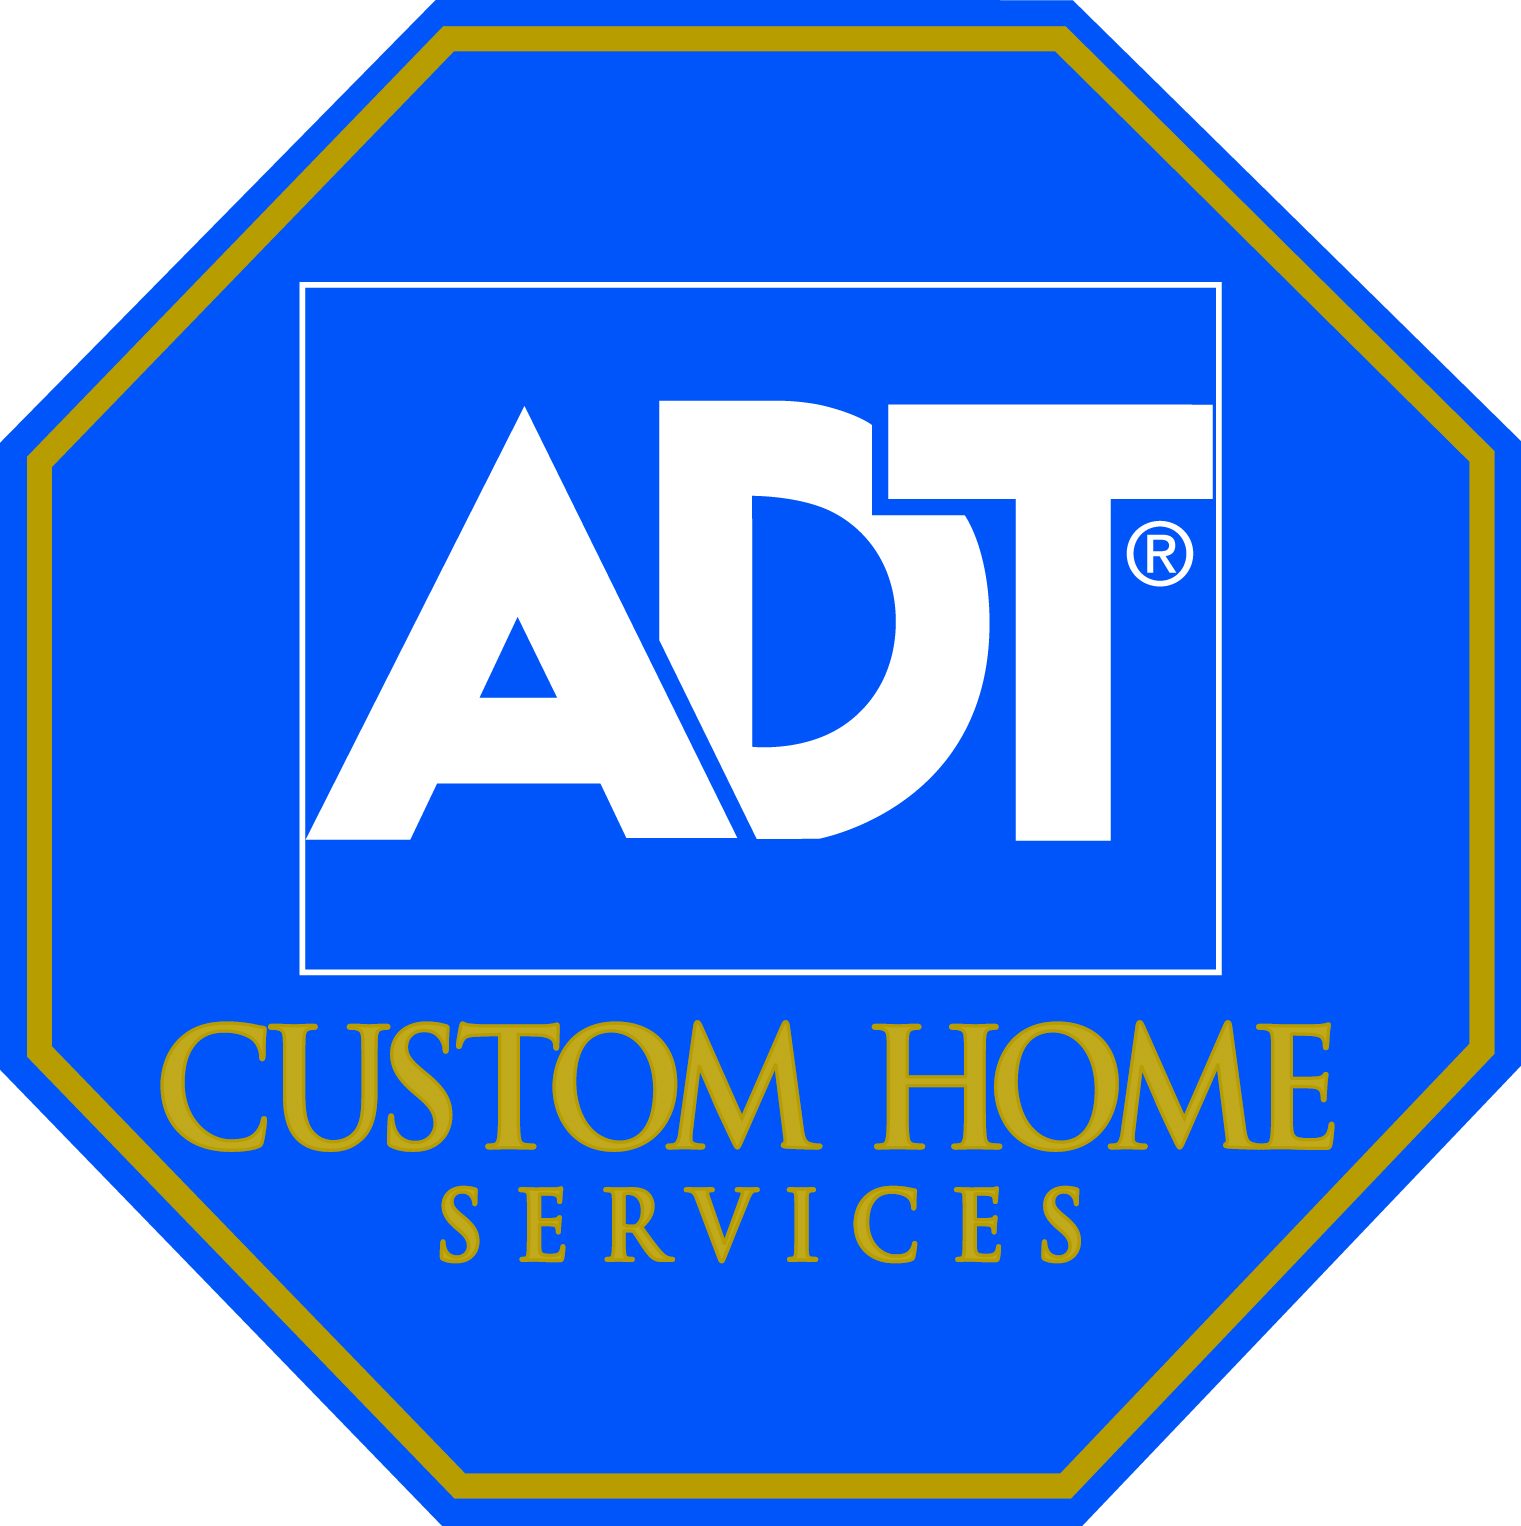 Adt Security Jobs Available